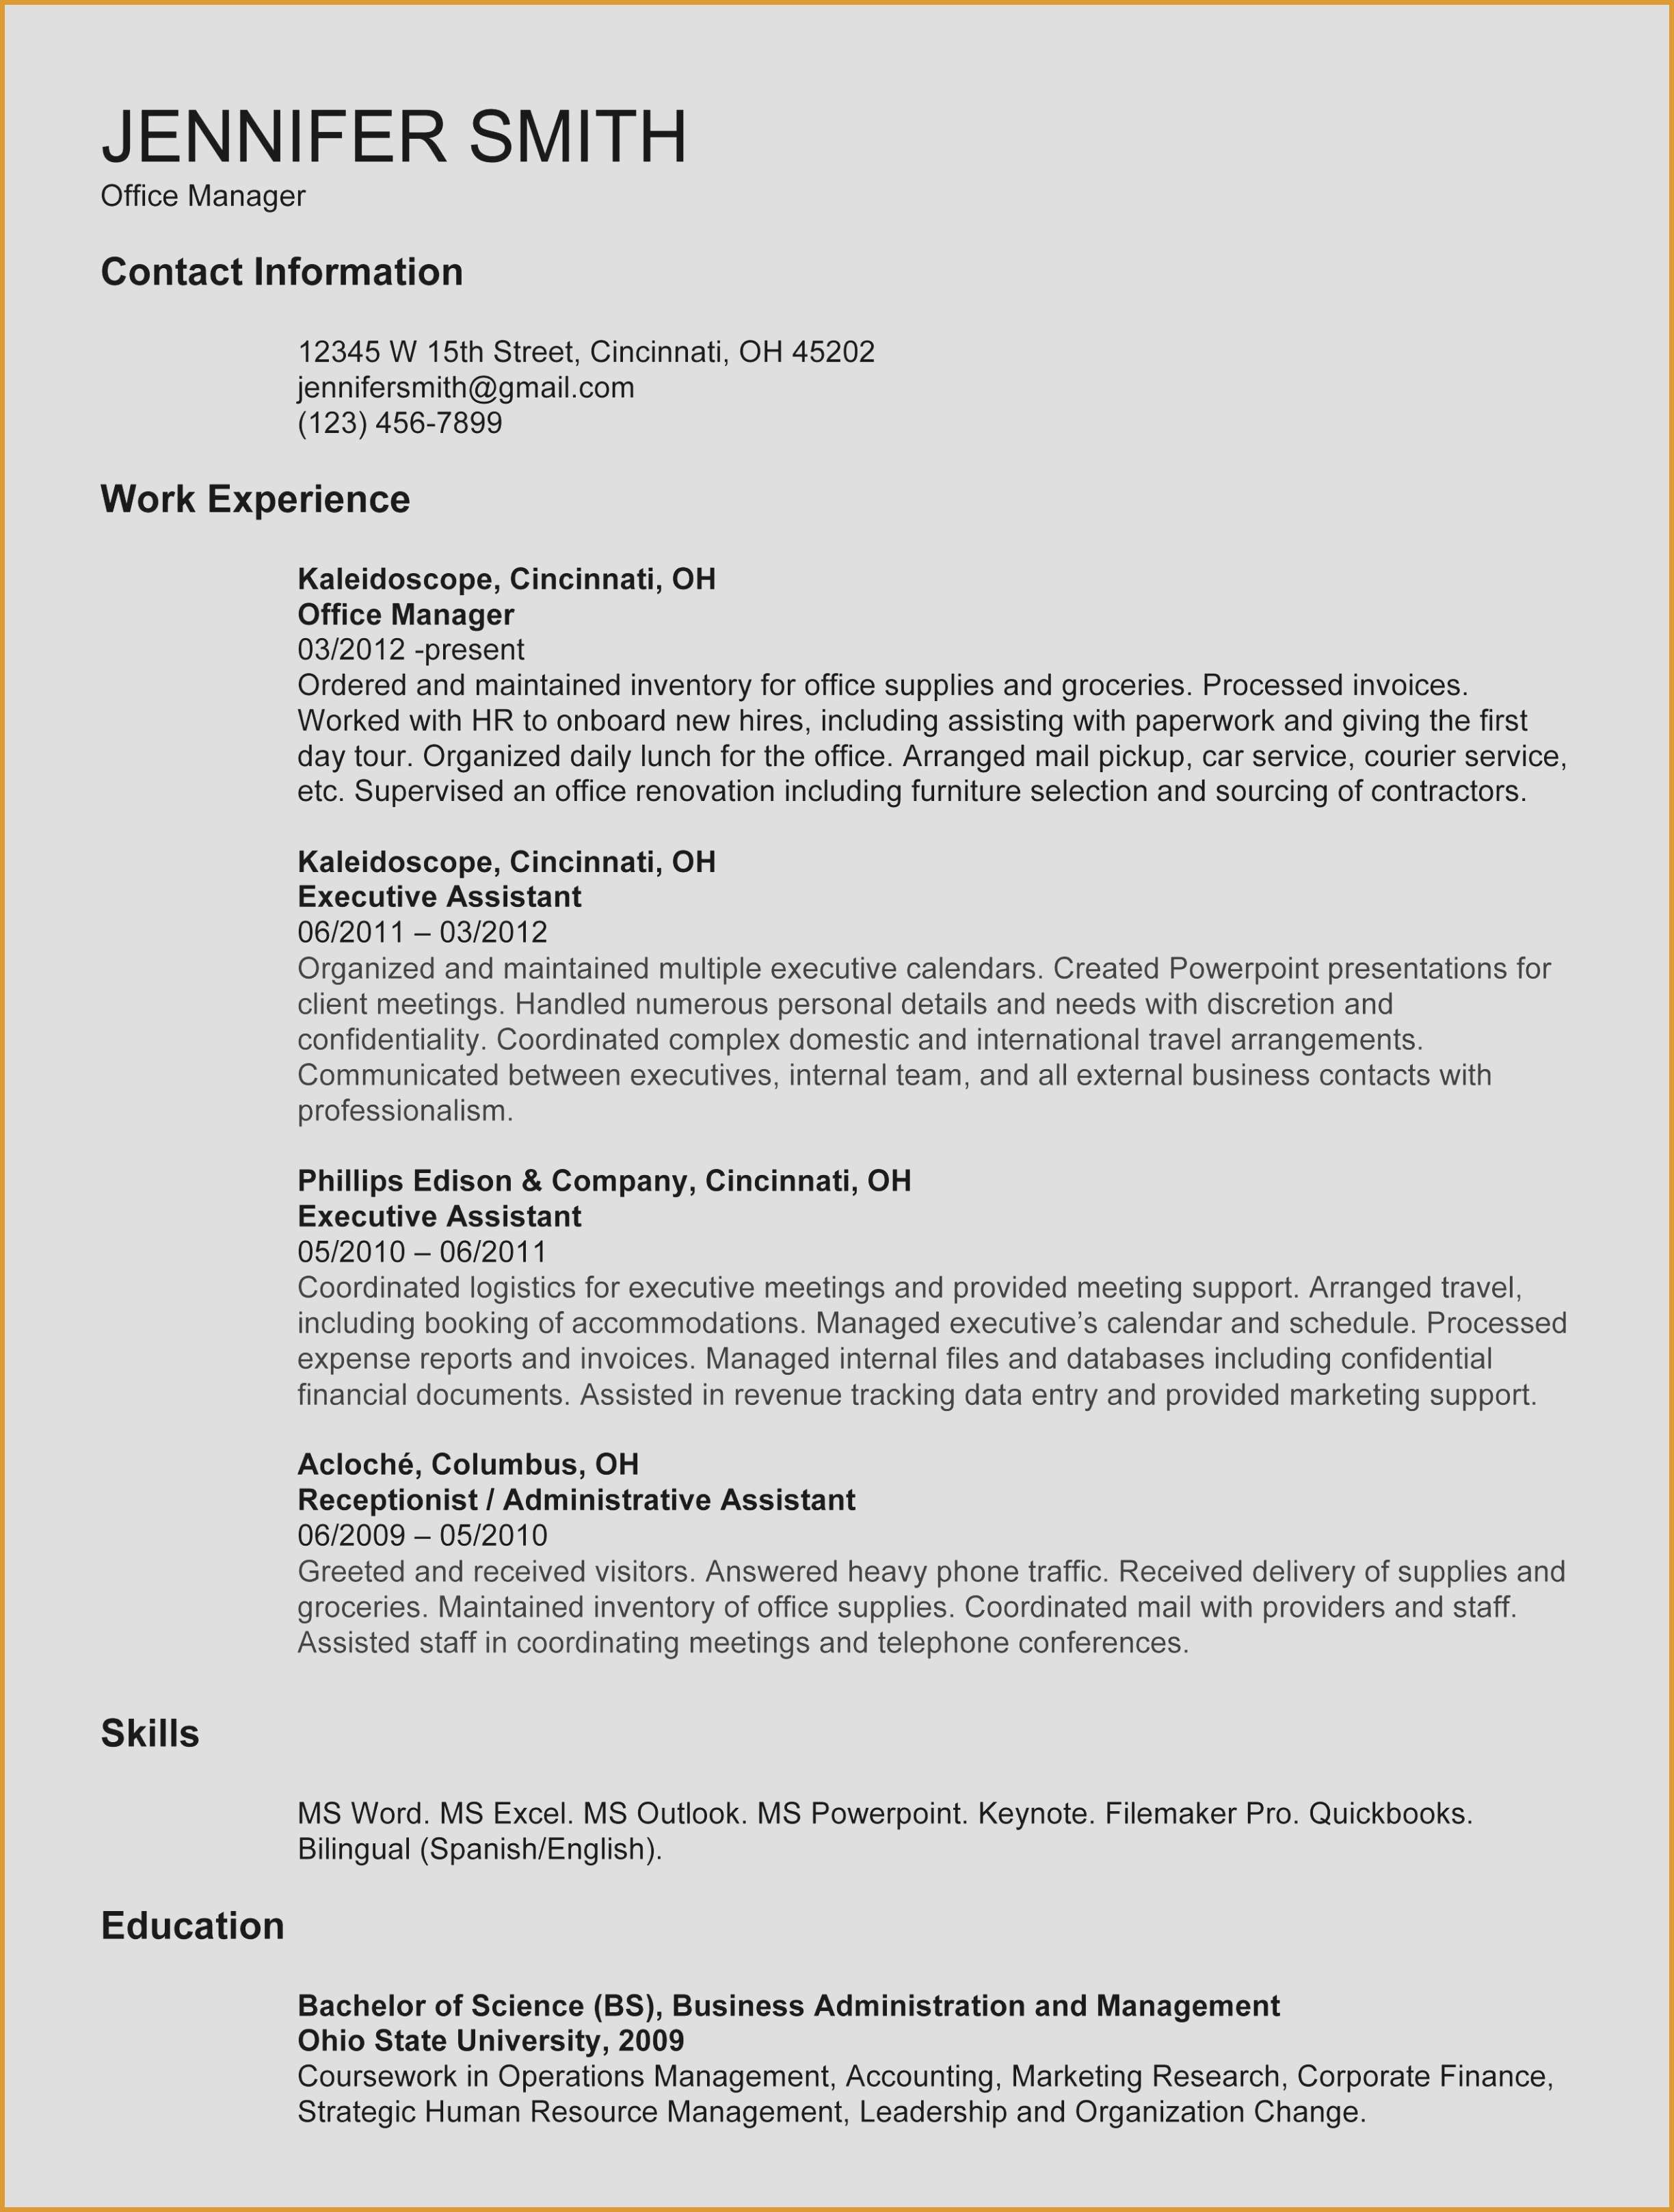 Letter Of Recommendation Template for Student - New Letter Re Mendation Template for Student